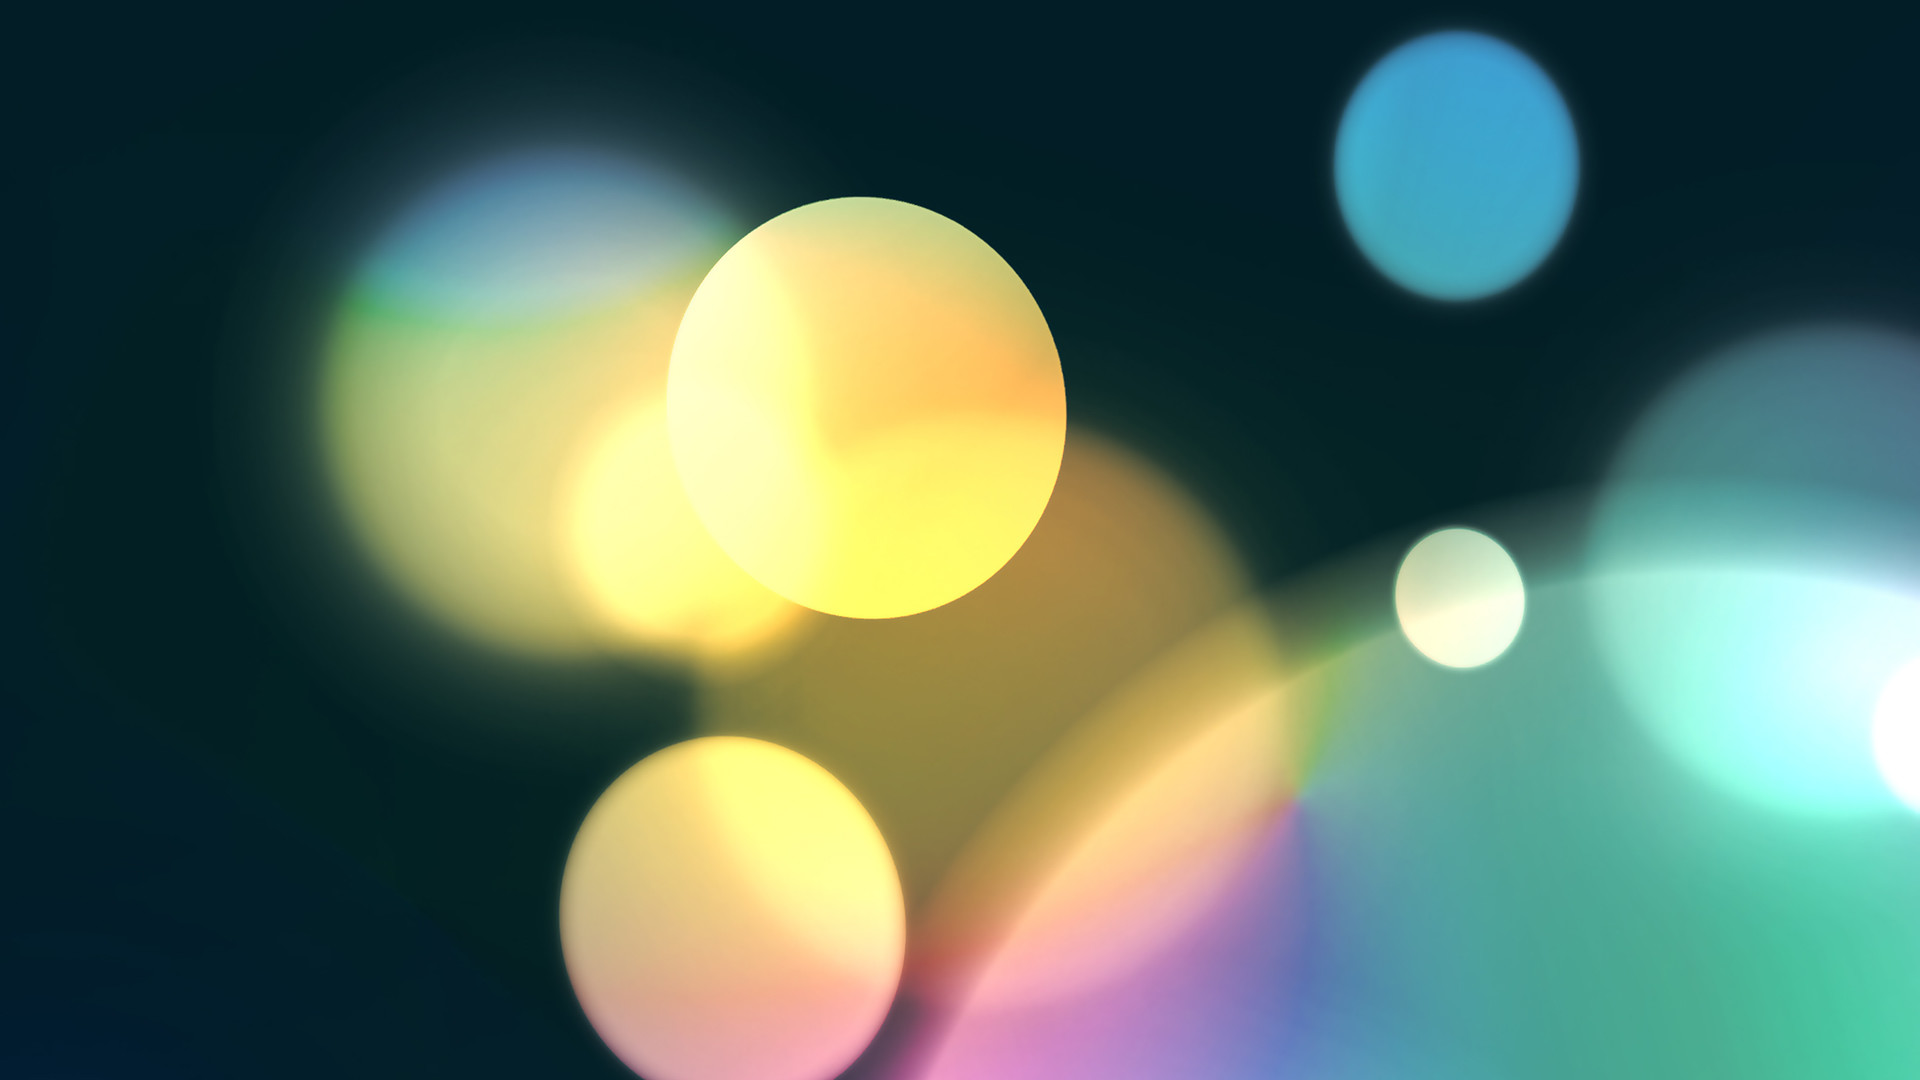 Jelly Bean Wallpapers (57+ images)